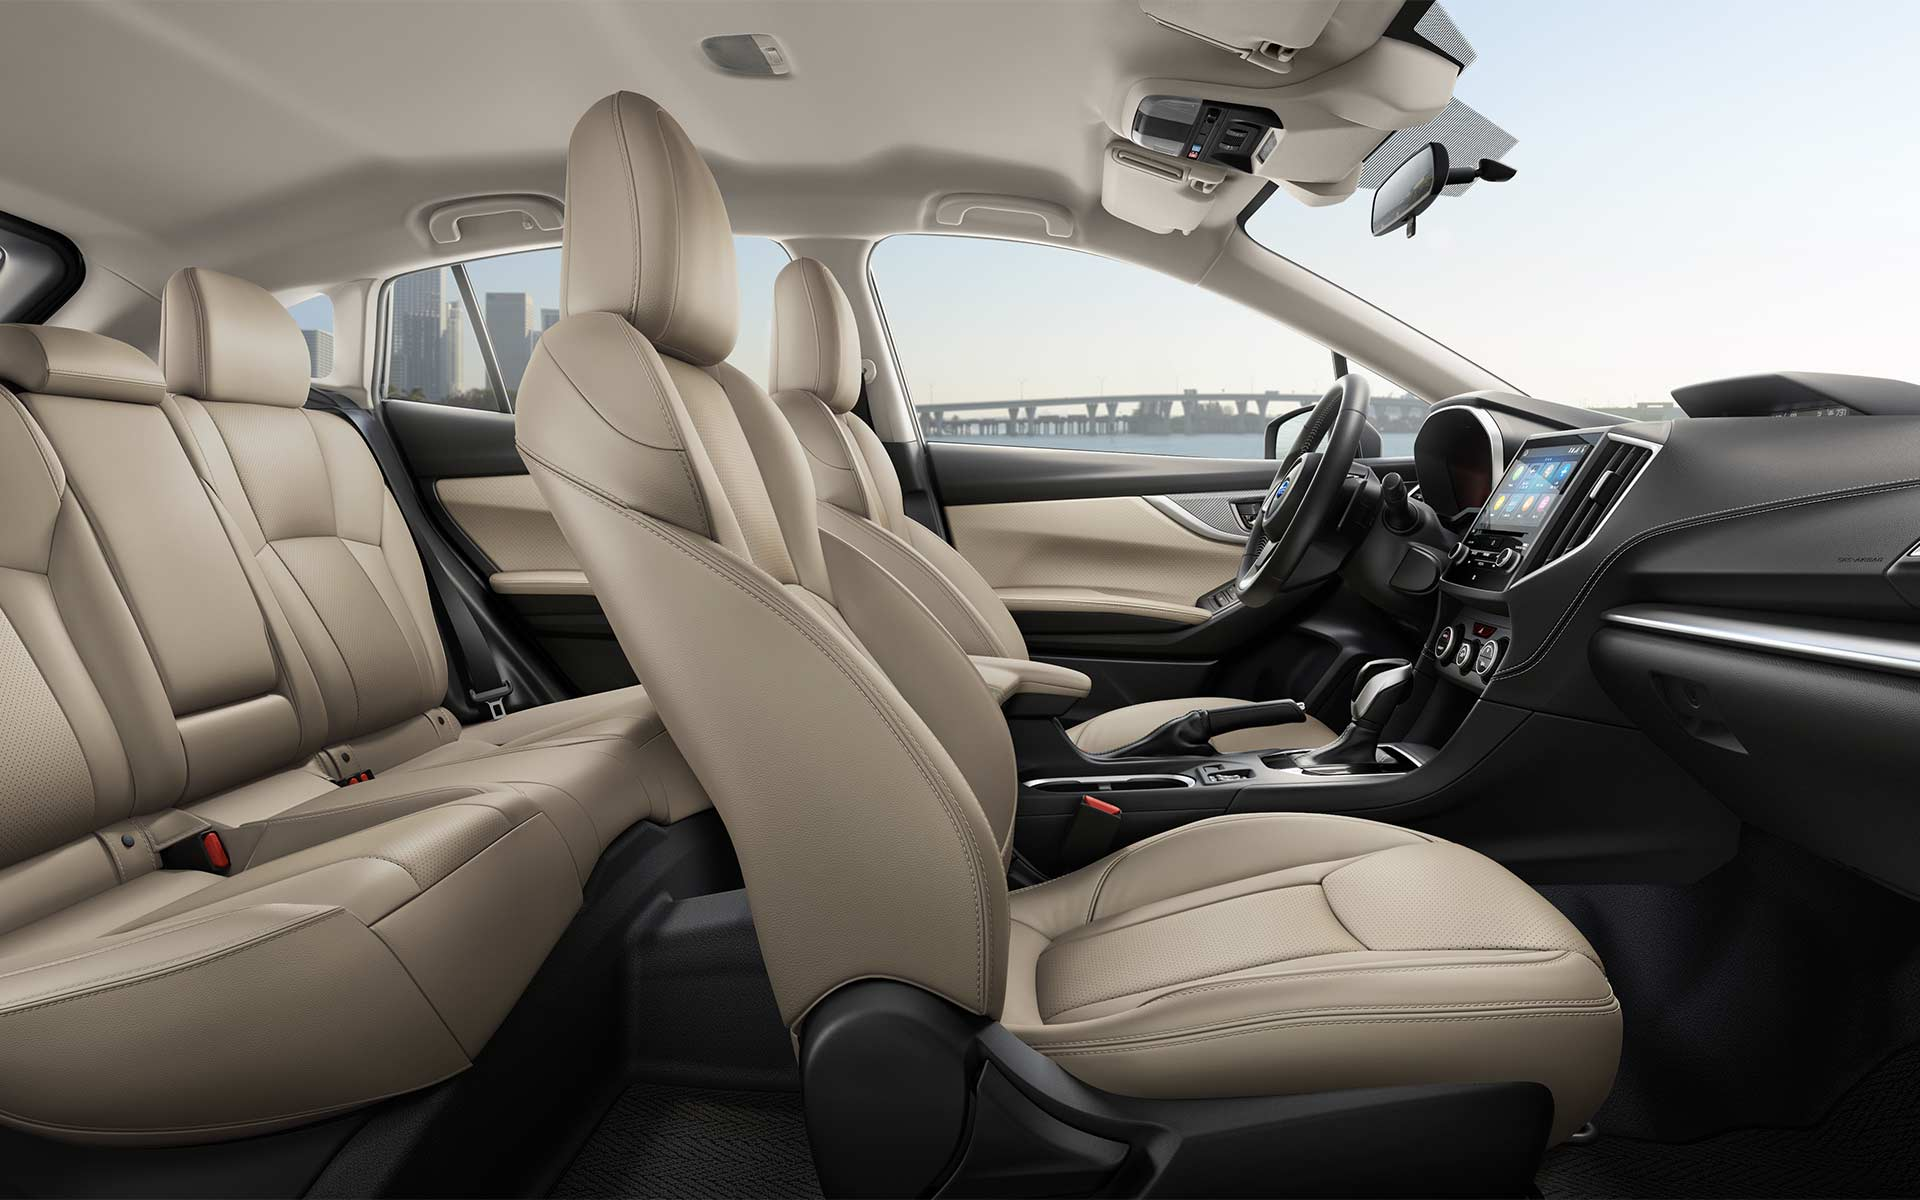 An interior photo showing the front and rear seats of the 2020 Impreza.